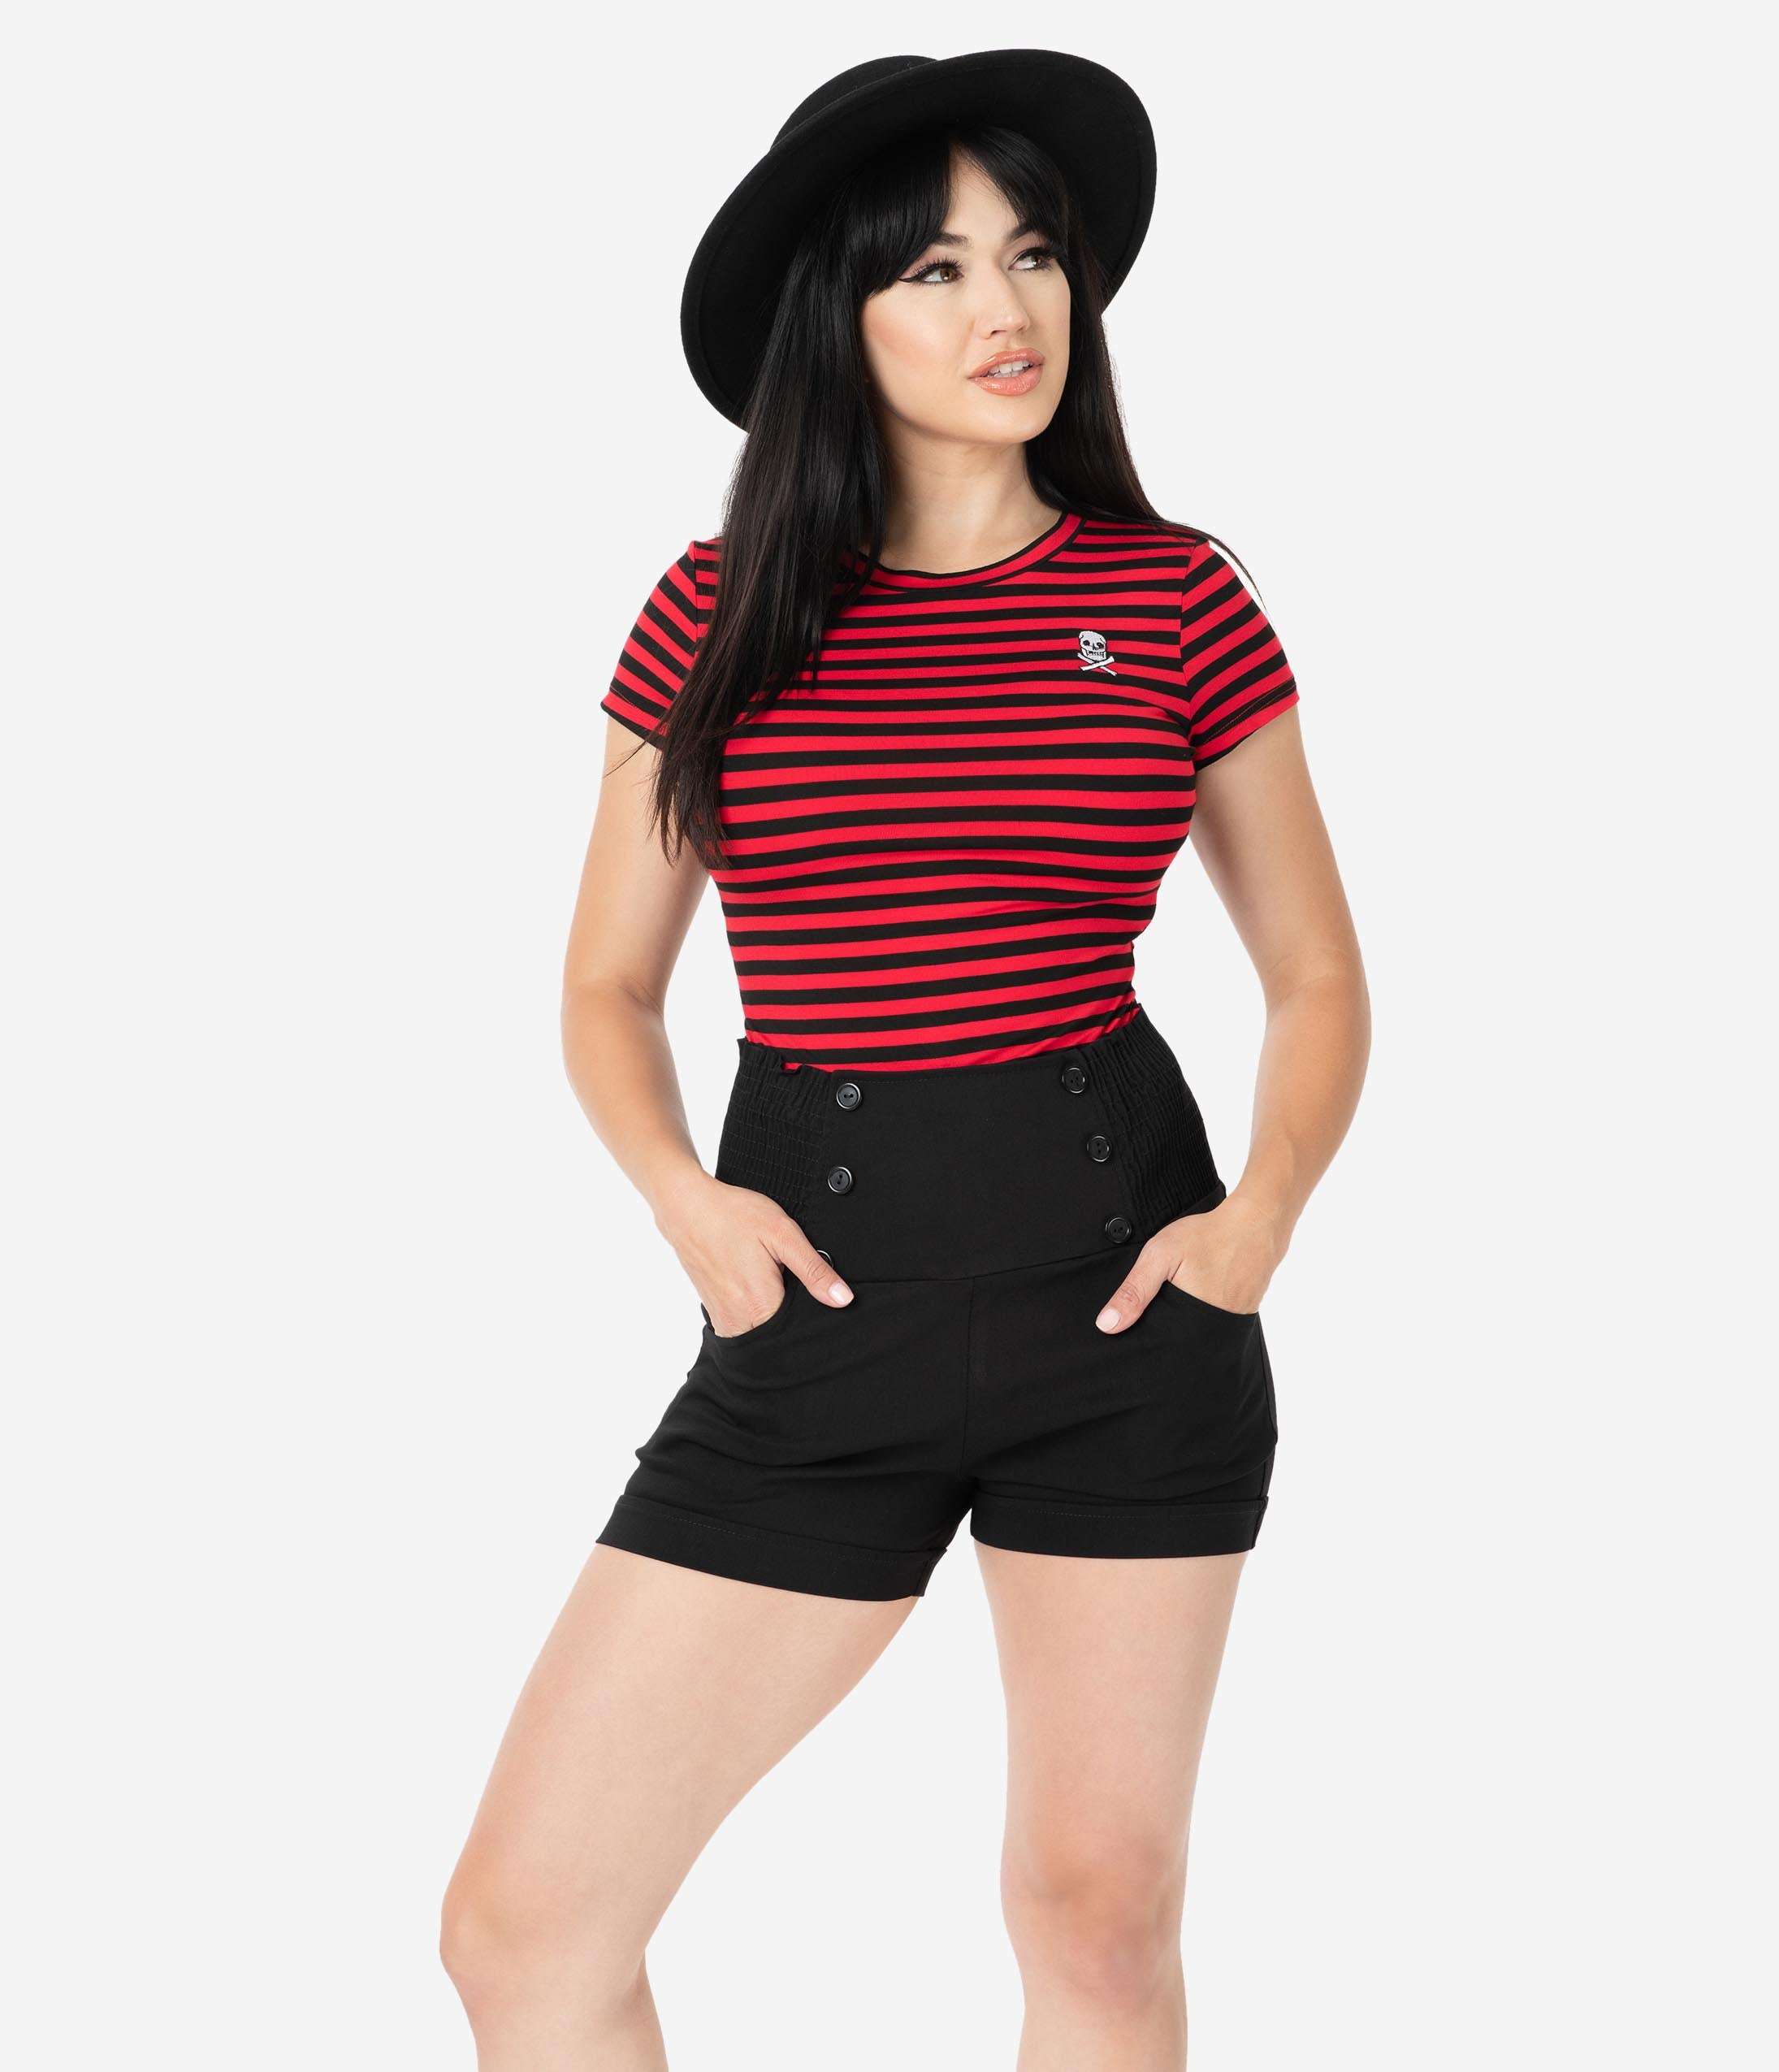 Pin Up Girl PRINT Brunette Wearing Navy Outfit Shorts Crop Top Hat High Heels